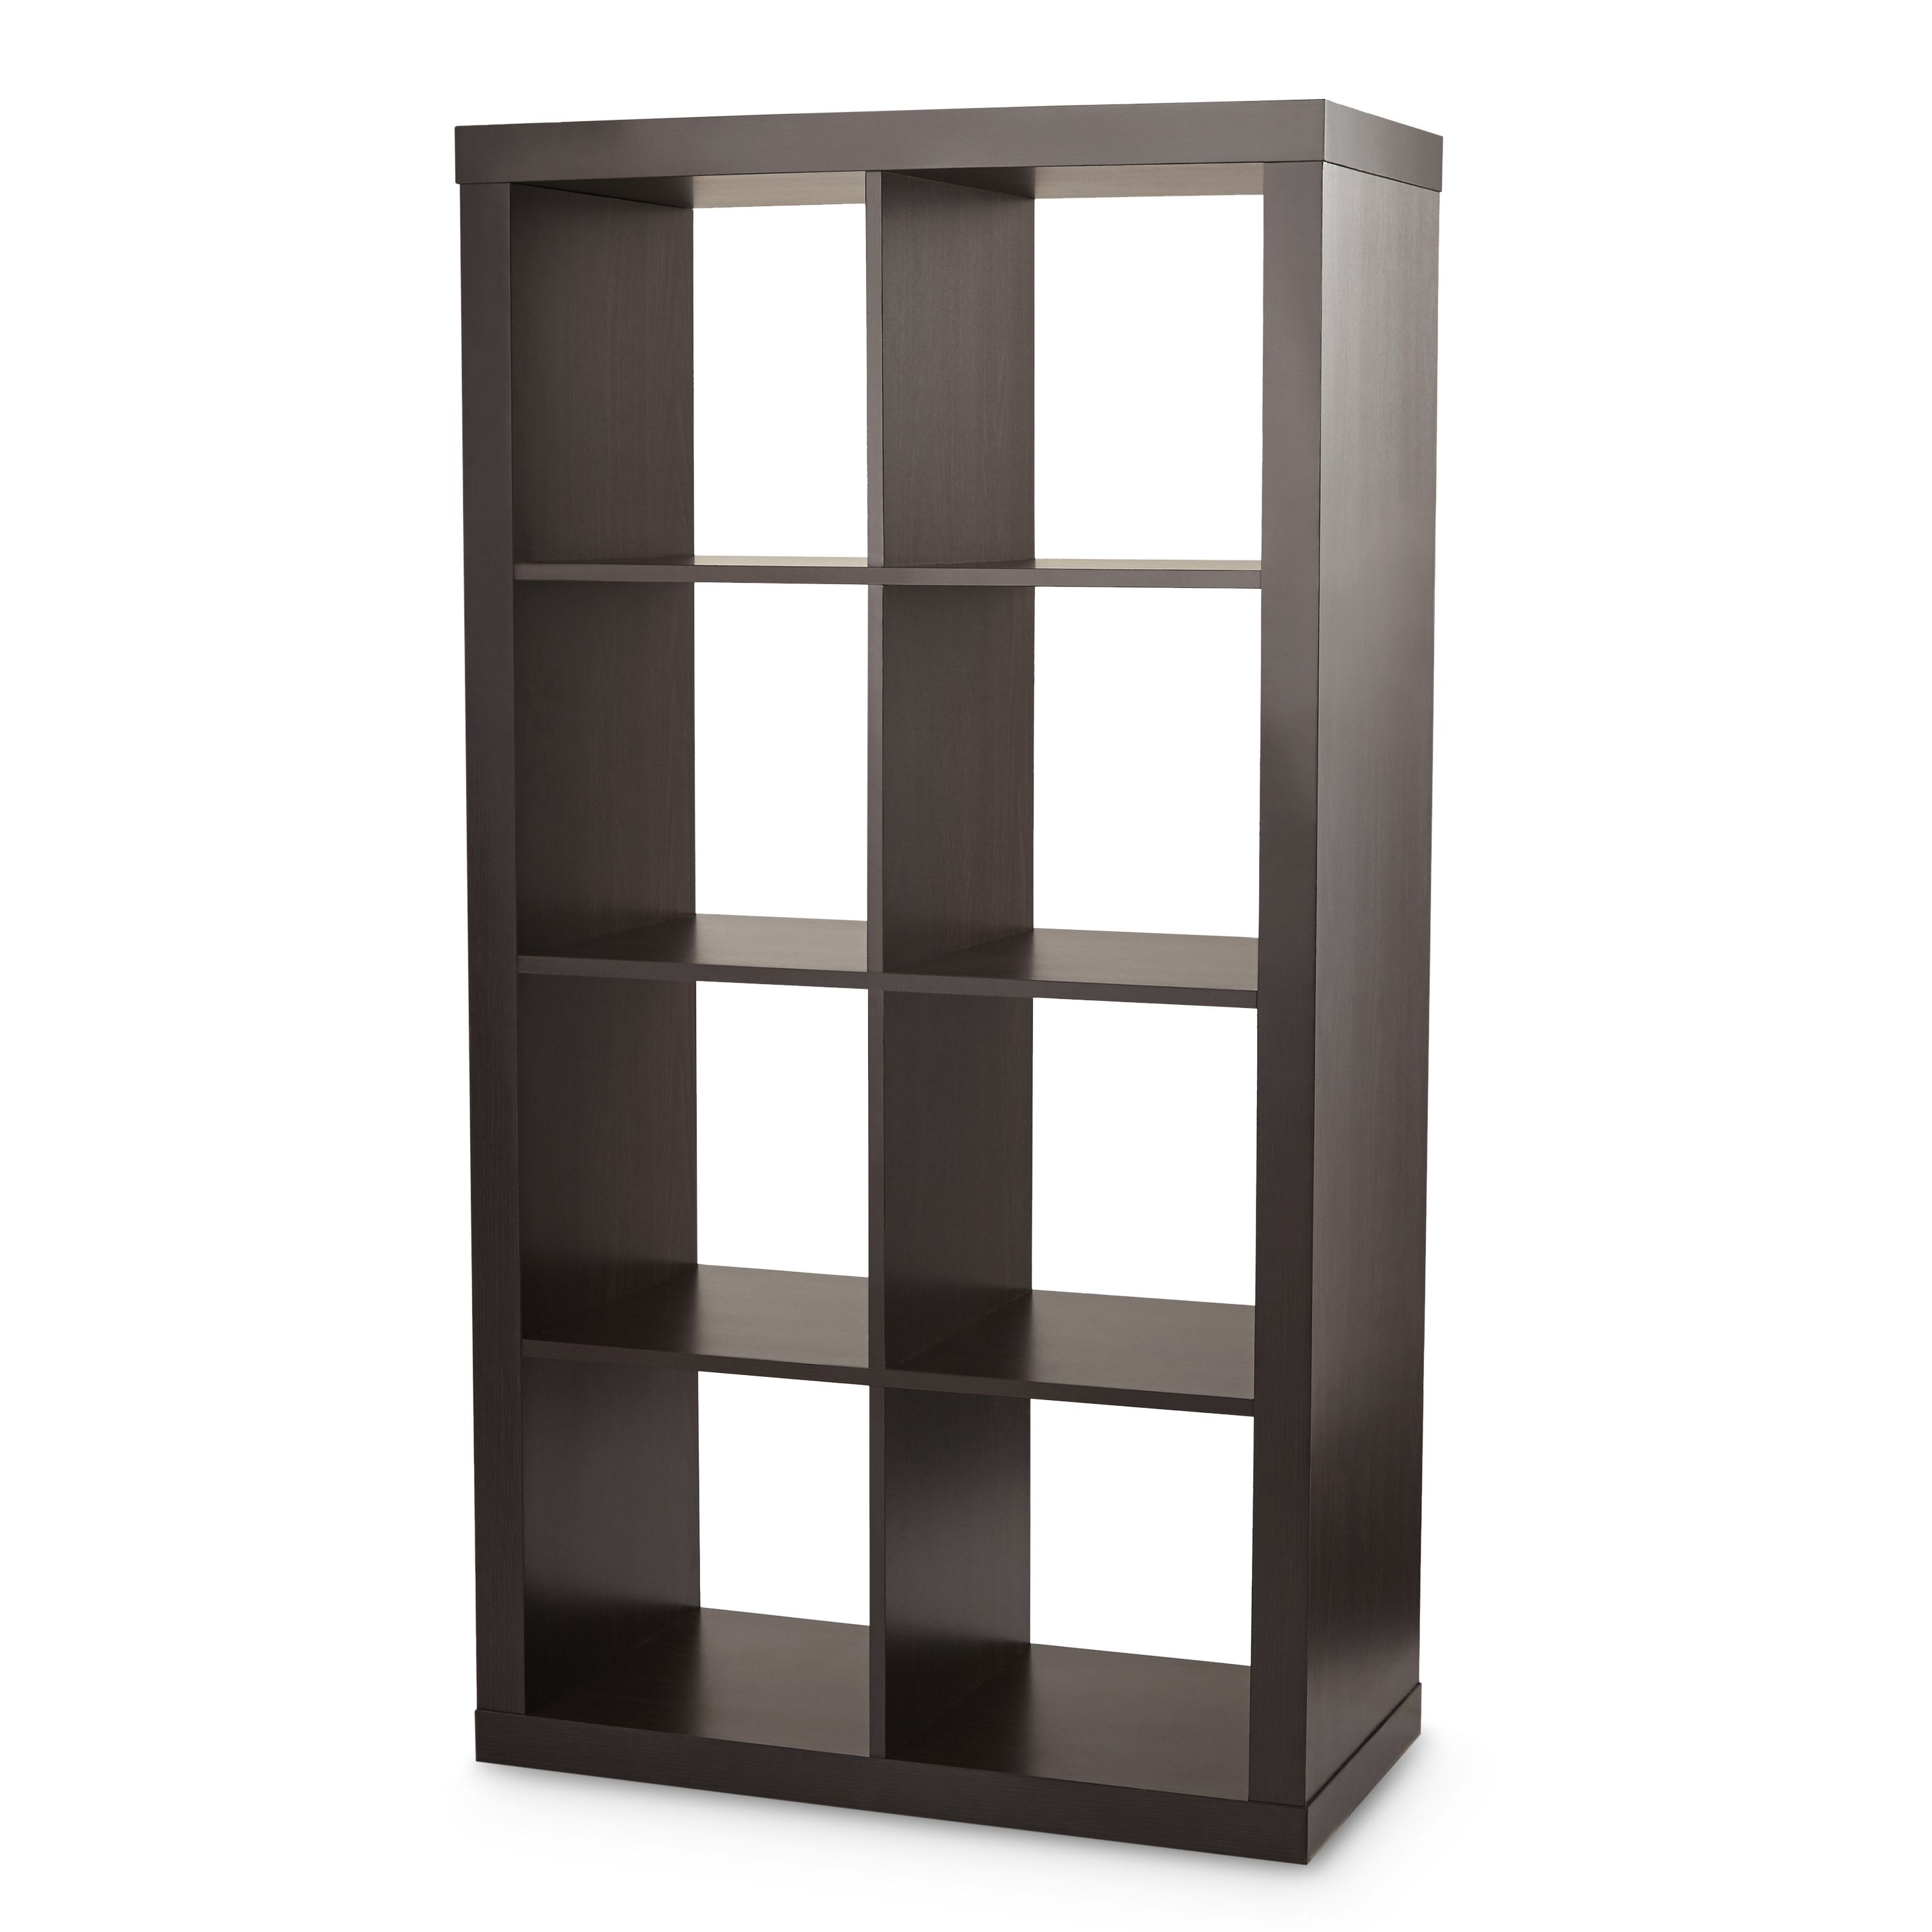 2ef715c604b482a43123fb4d24f5c152 - Better Homes And Gardens Cube Organizer Work Station